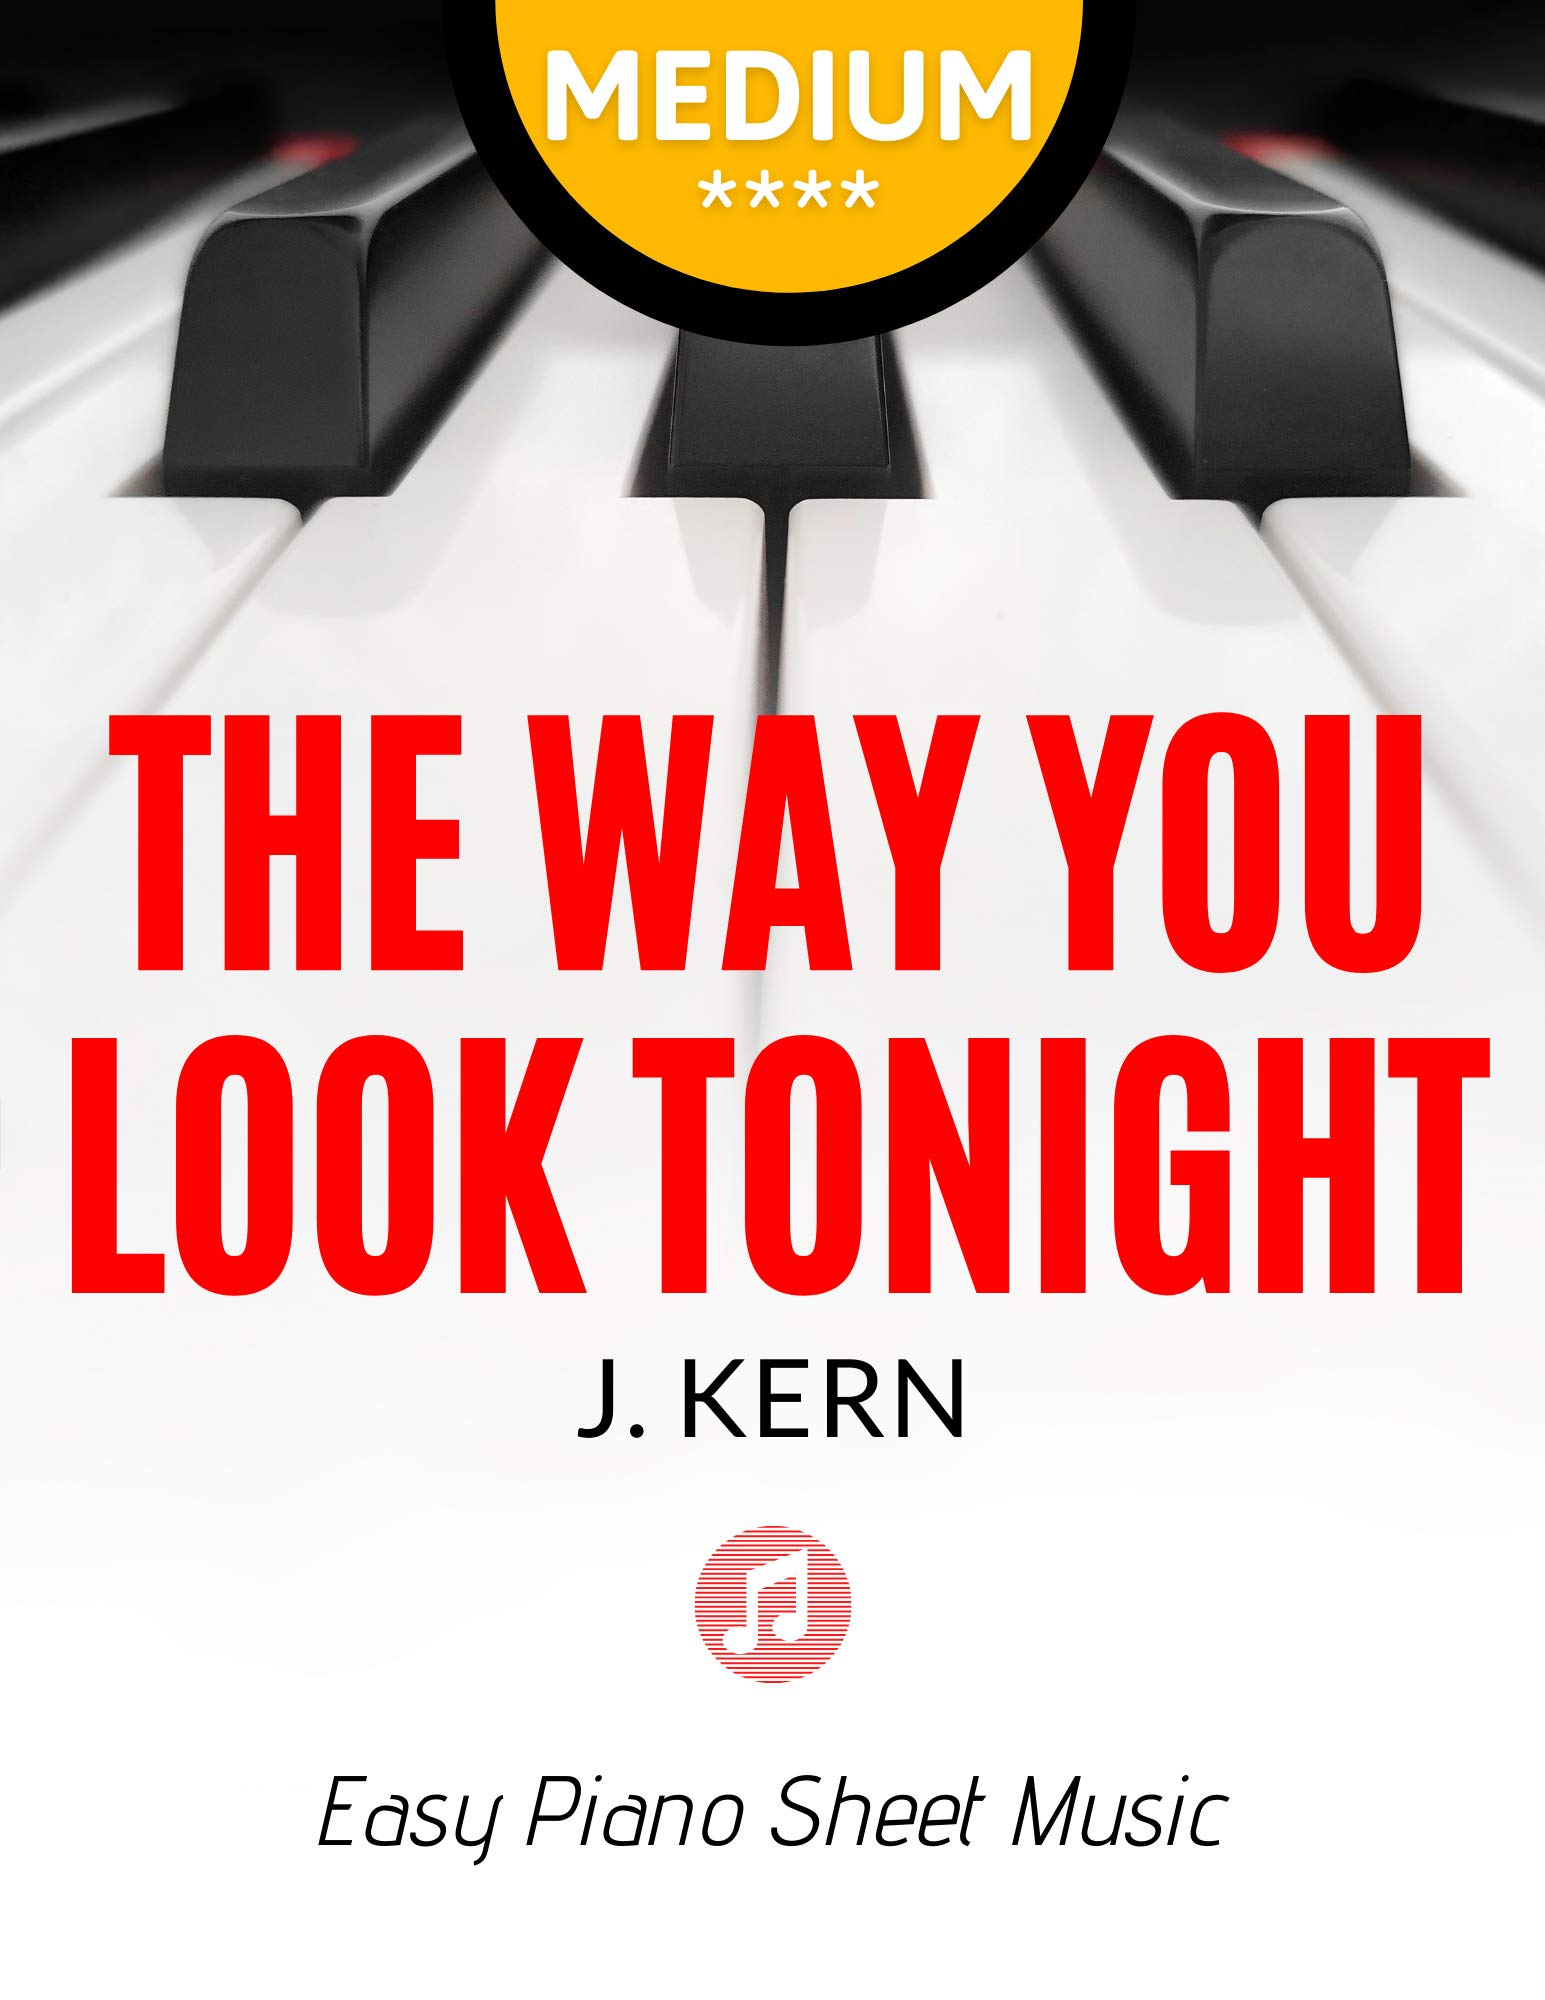 The Way You Look Tonight – Jerome Kern * MEDIUM Piano Sheet Music Notes for Advanced Pianists * Video Tutorial : You Should Play On Piano * Popular, Jazz Song for a Valentine's Day * BIG Notes